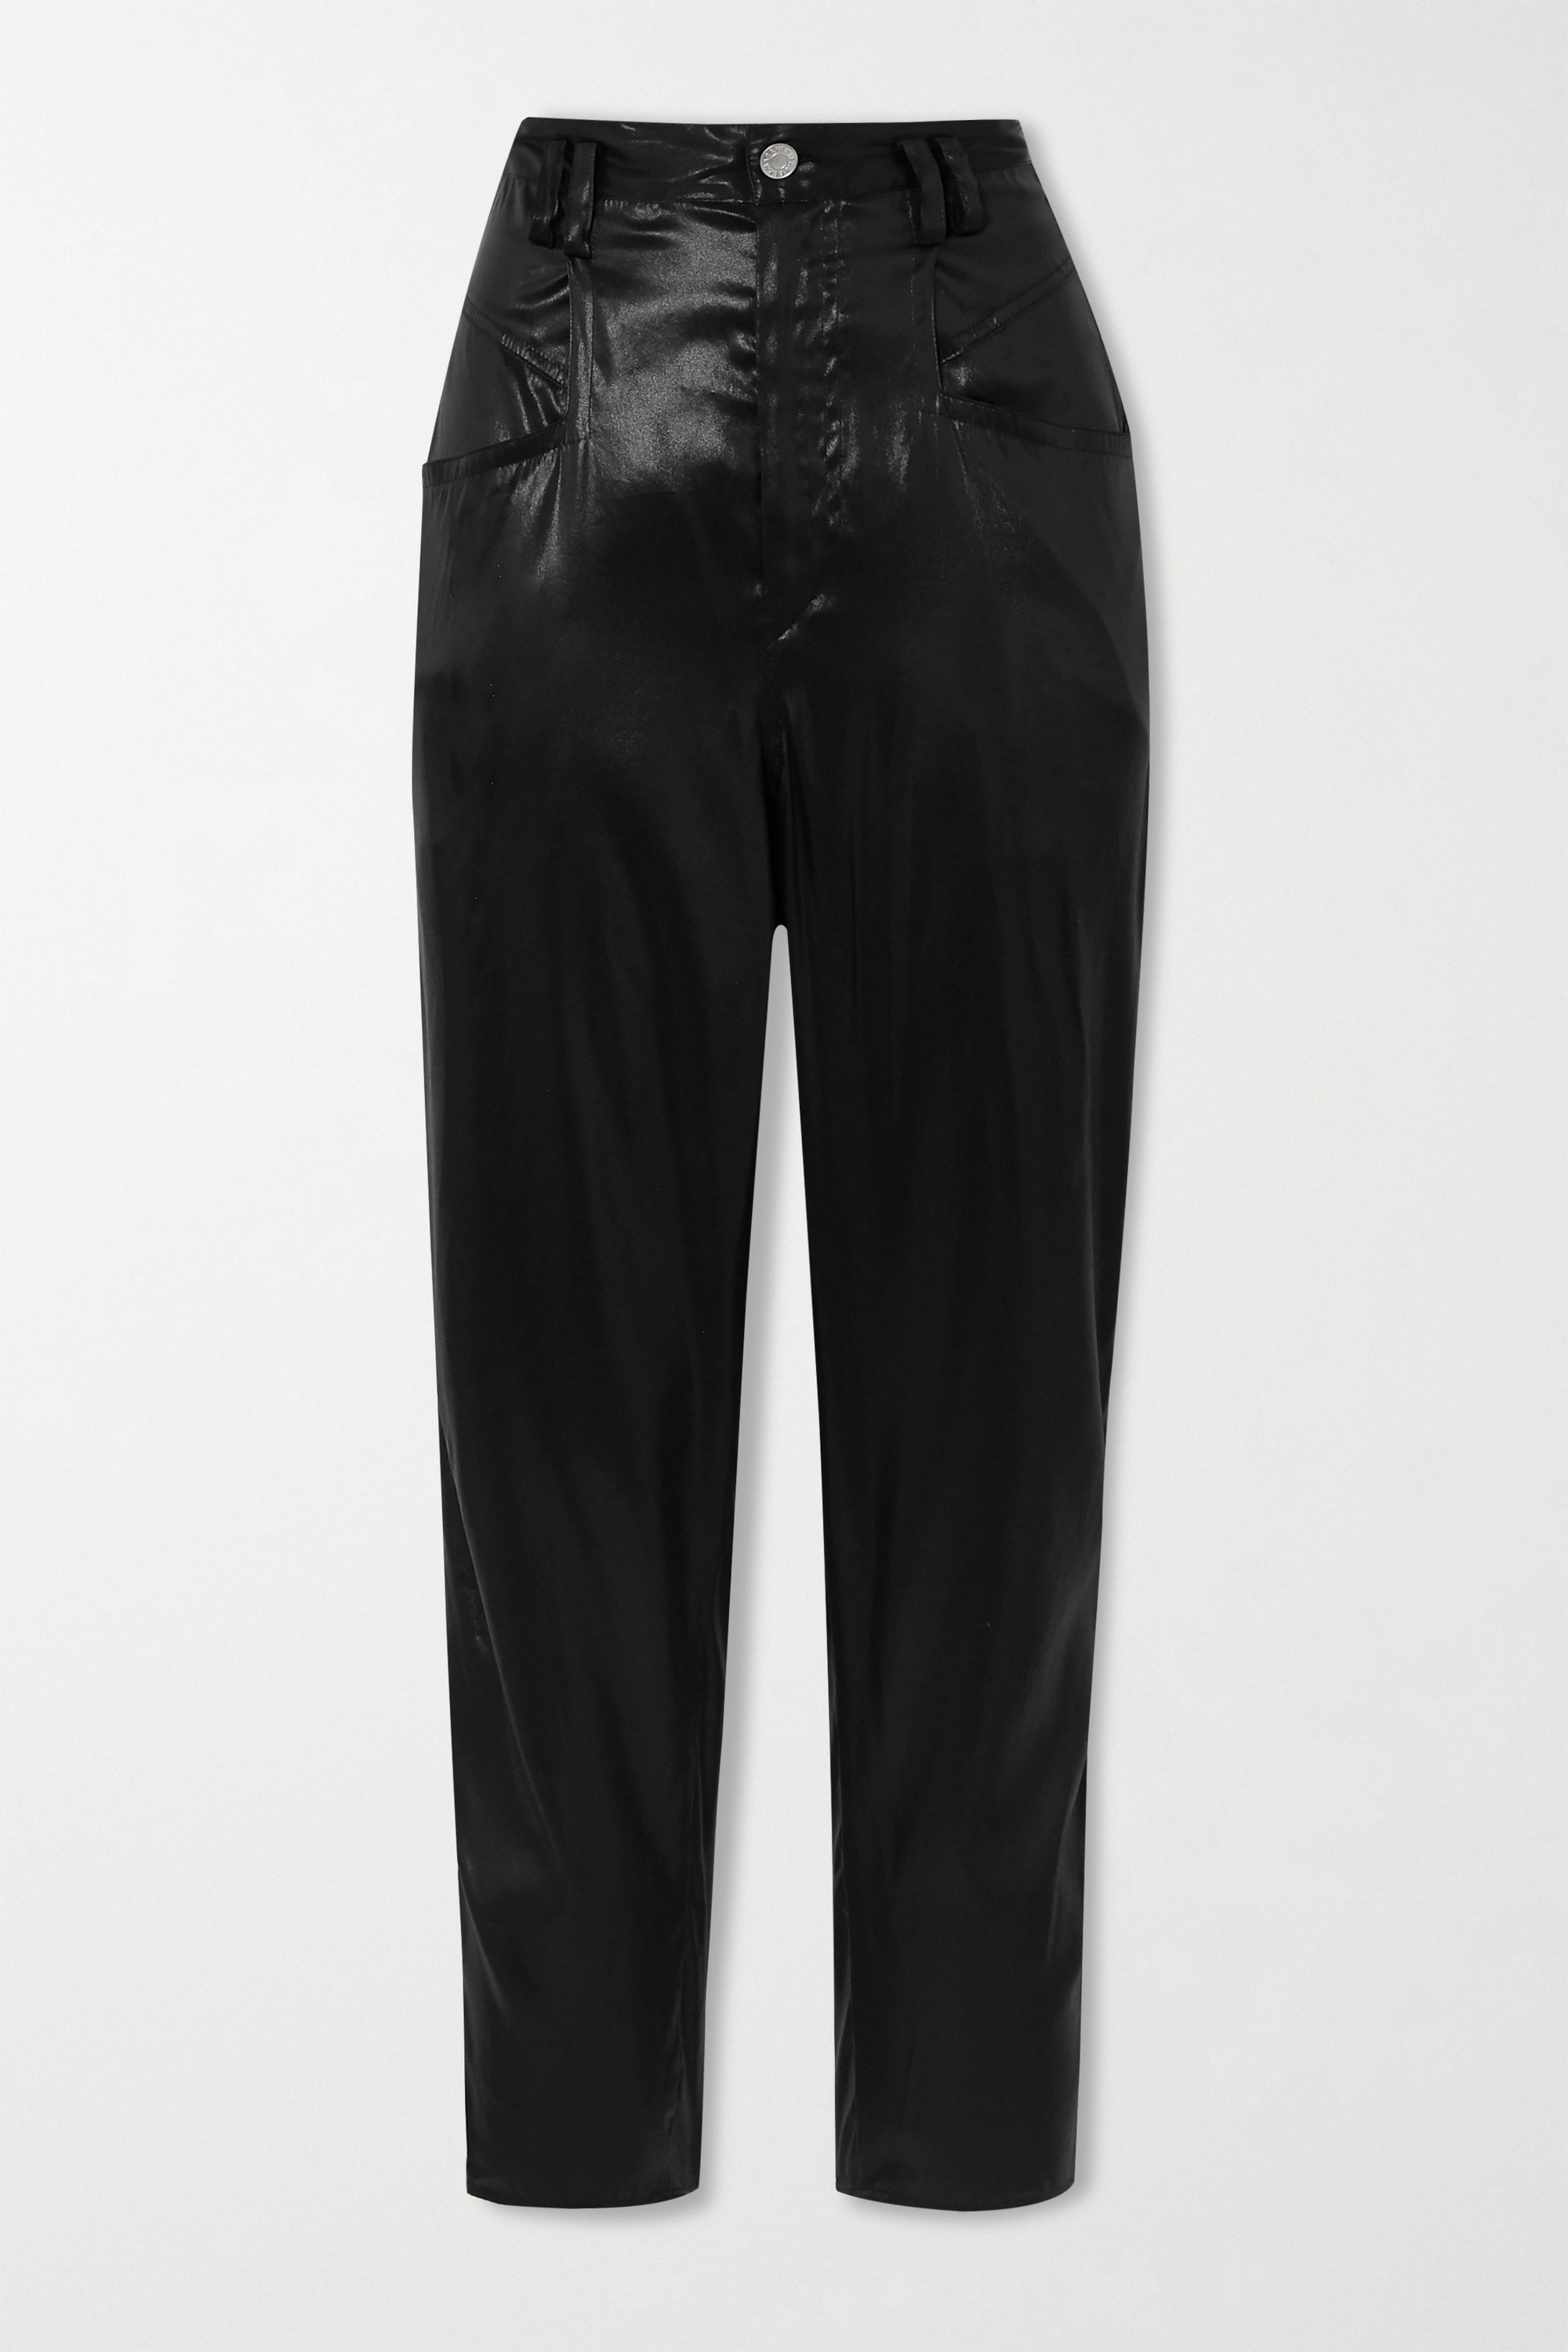 Isabel Marant Oversized silk-satin tapered pants